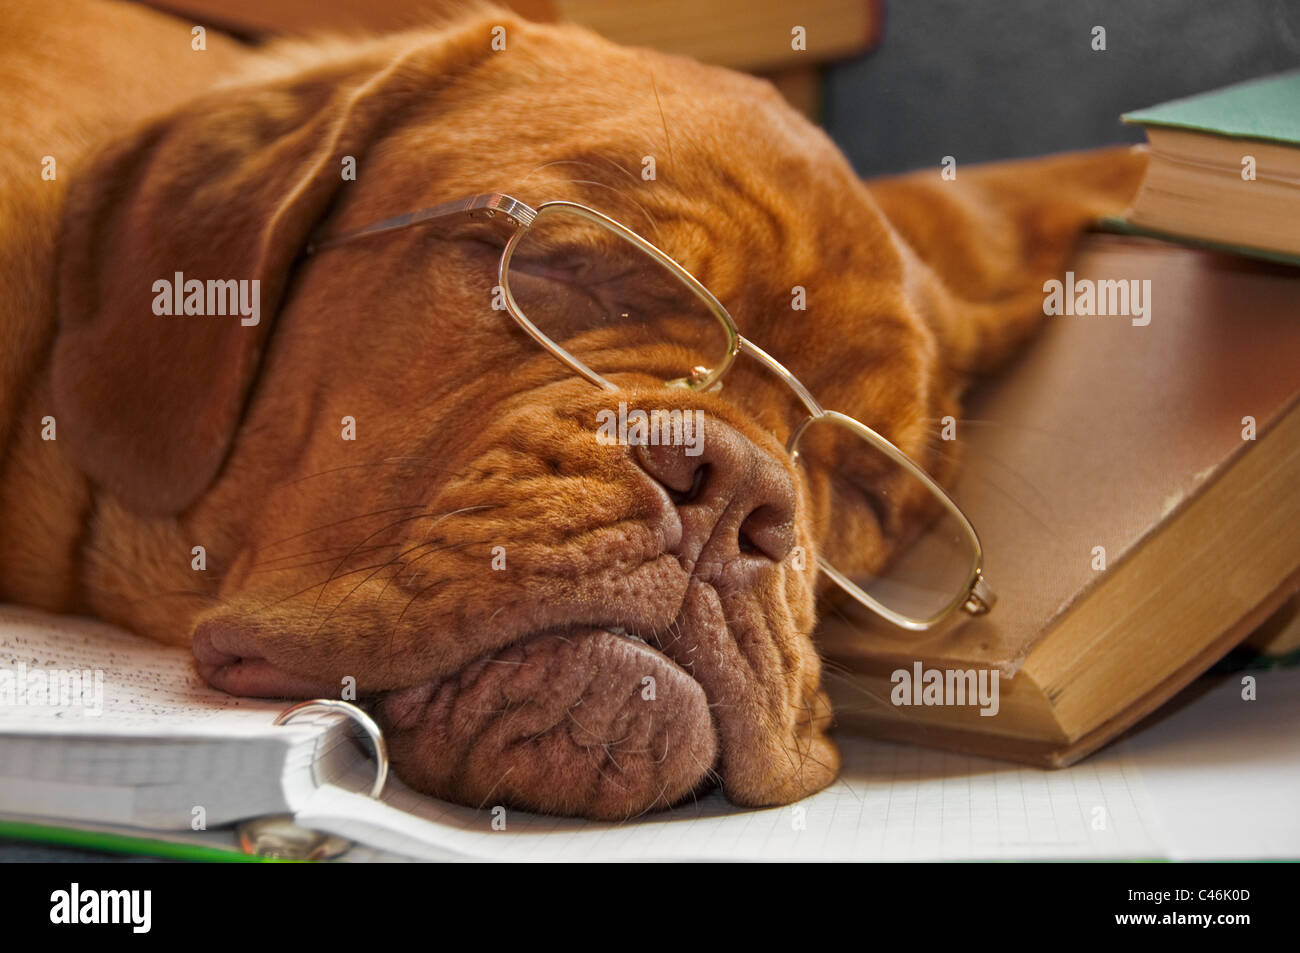 Cute puppy with glasses tired of studying sleeping on textbooks - Stock Image